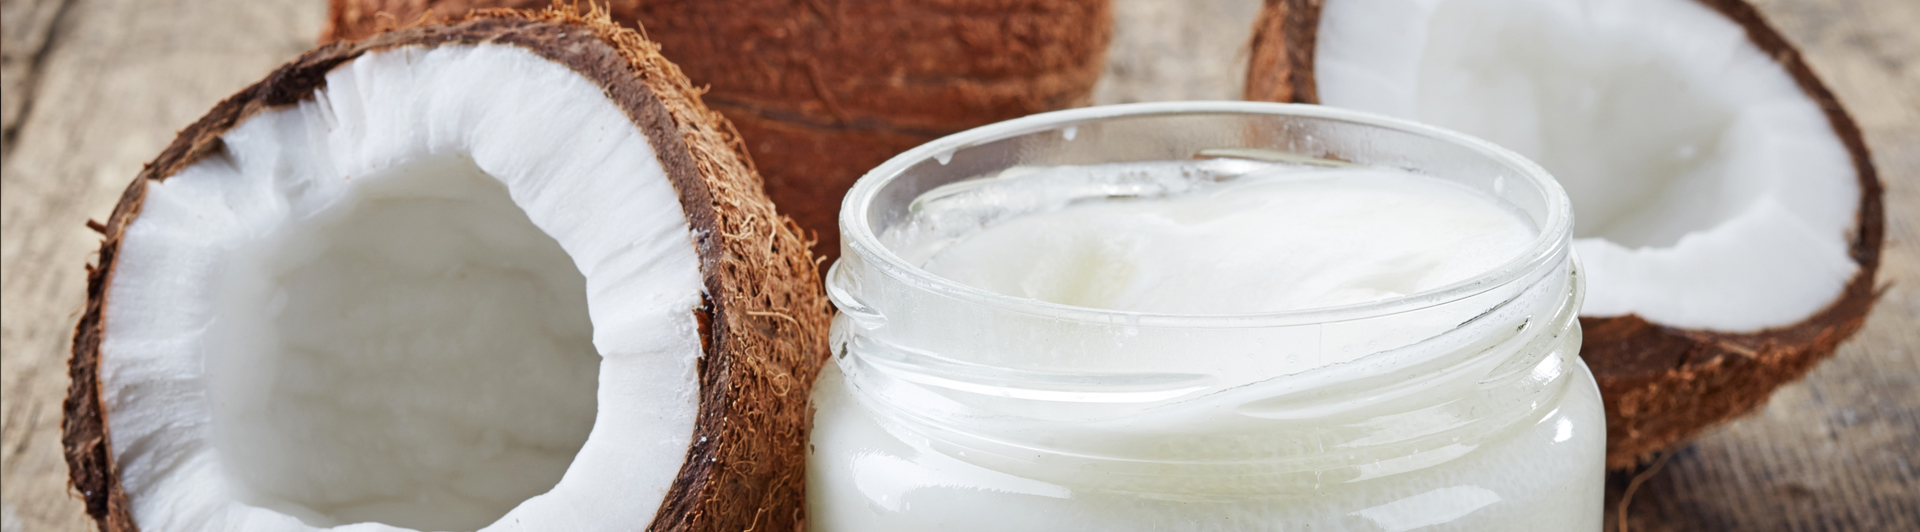 Coconut Oil: Friend or Foe? | SCL Health